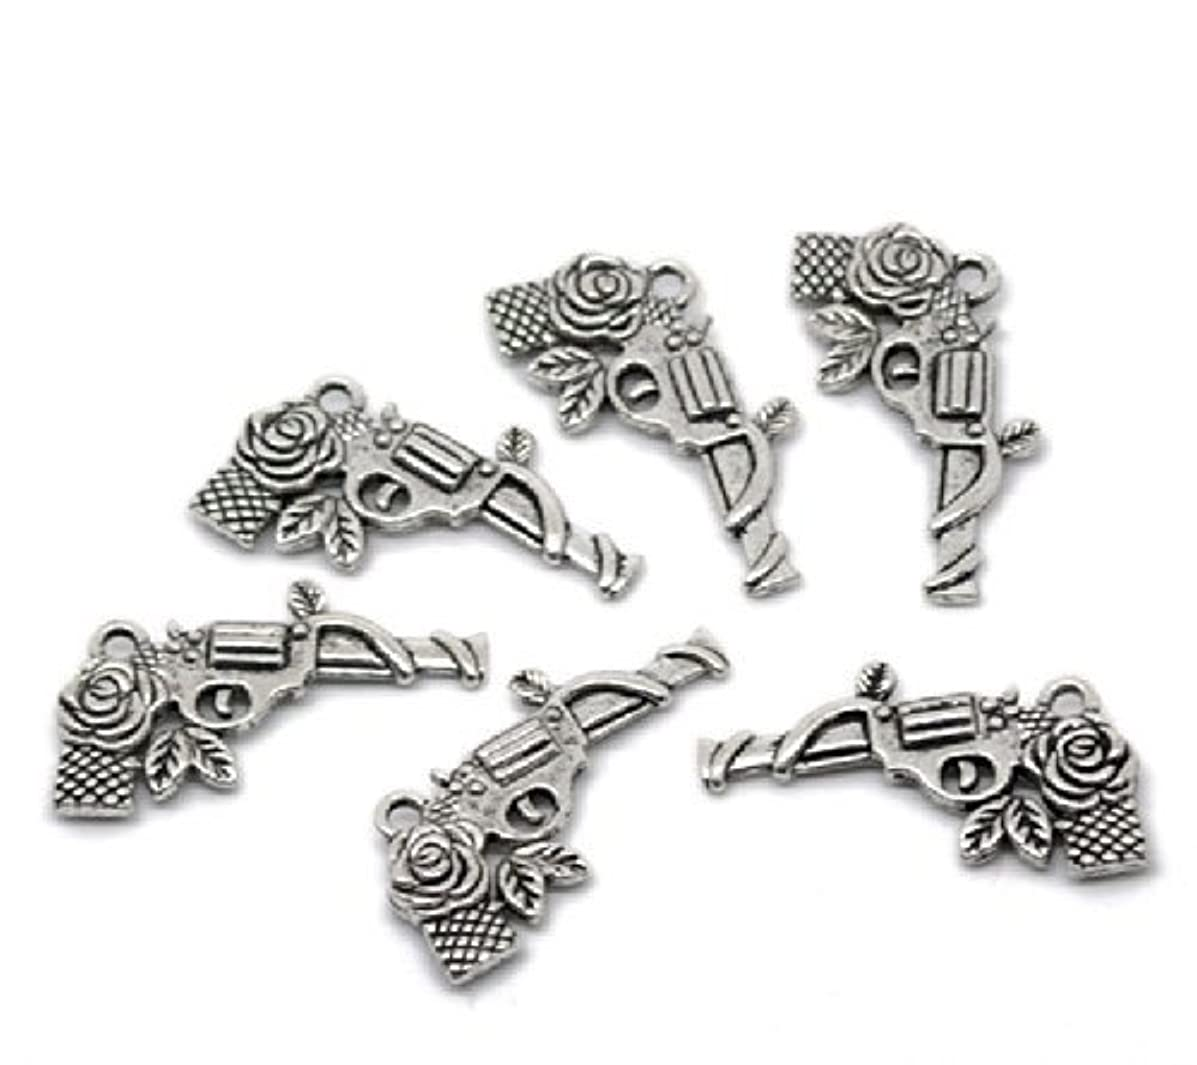 PEPPERLONELY 20pc Antiqued Silver Gun and Rose Revolver Pistol Charm & Pendant Tibetan Sty.